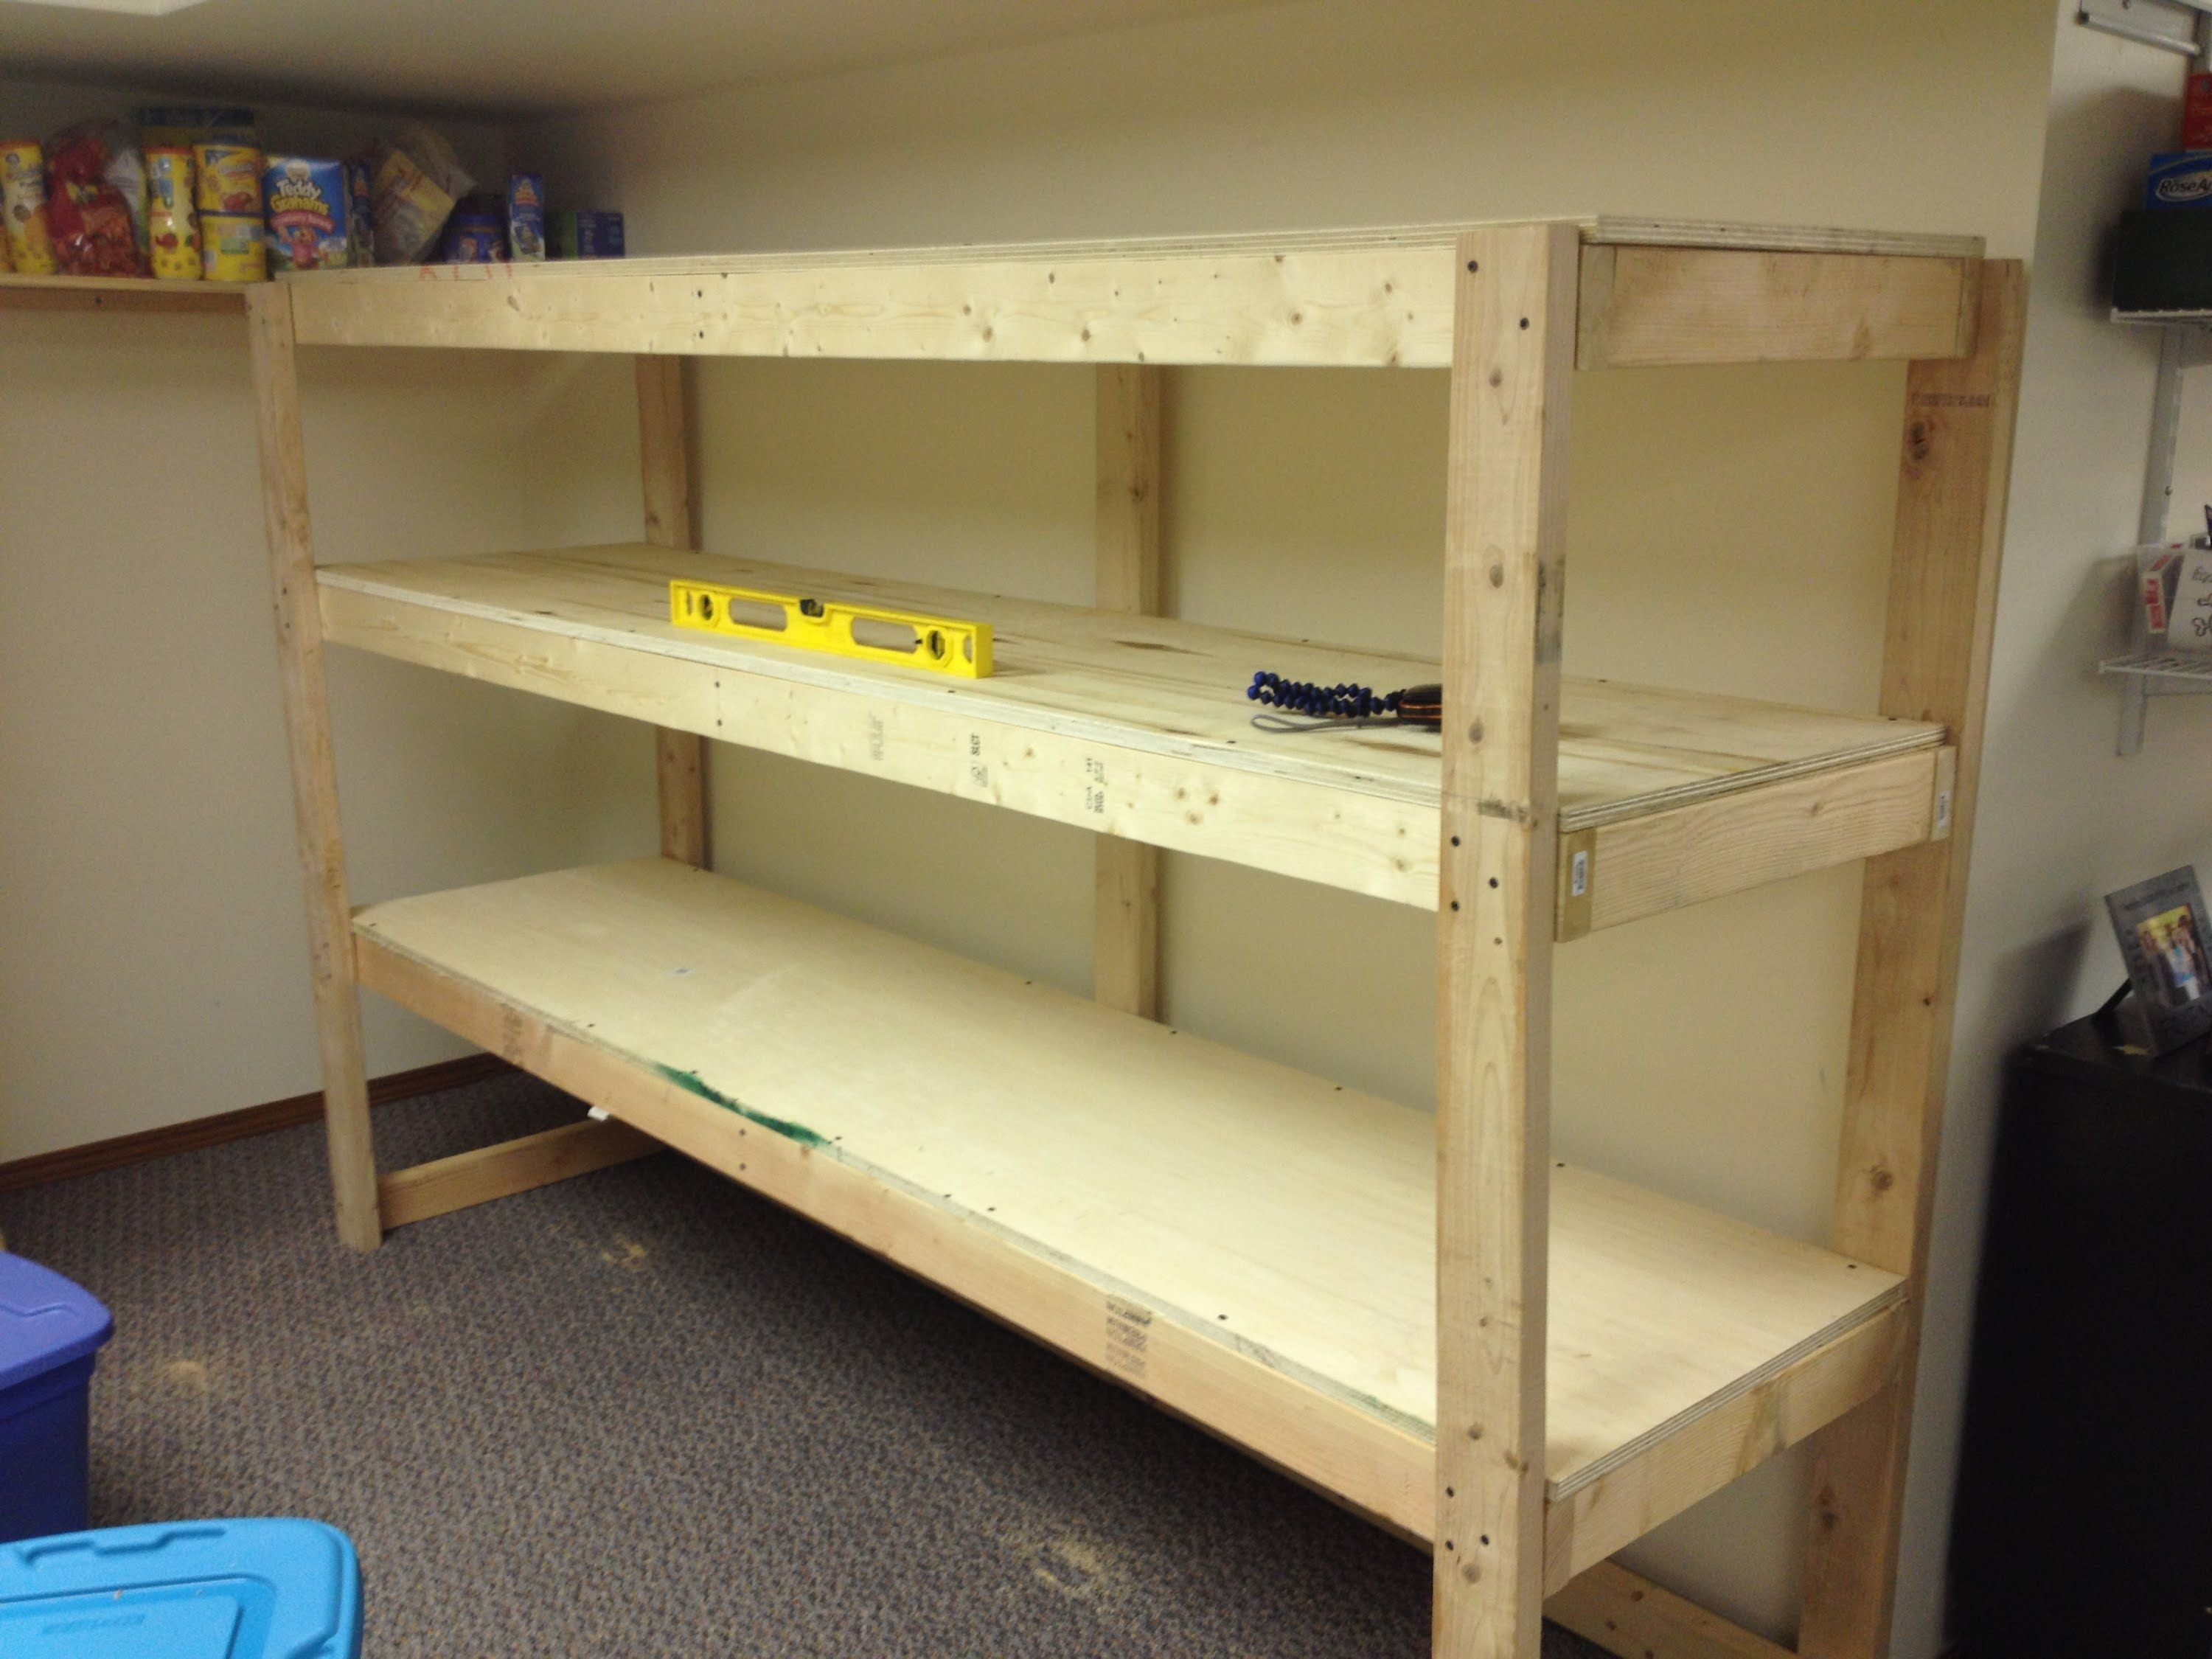 How to make garage shelves - Building A Wooden Storage Shelf In The Basement Youtube